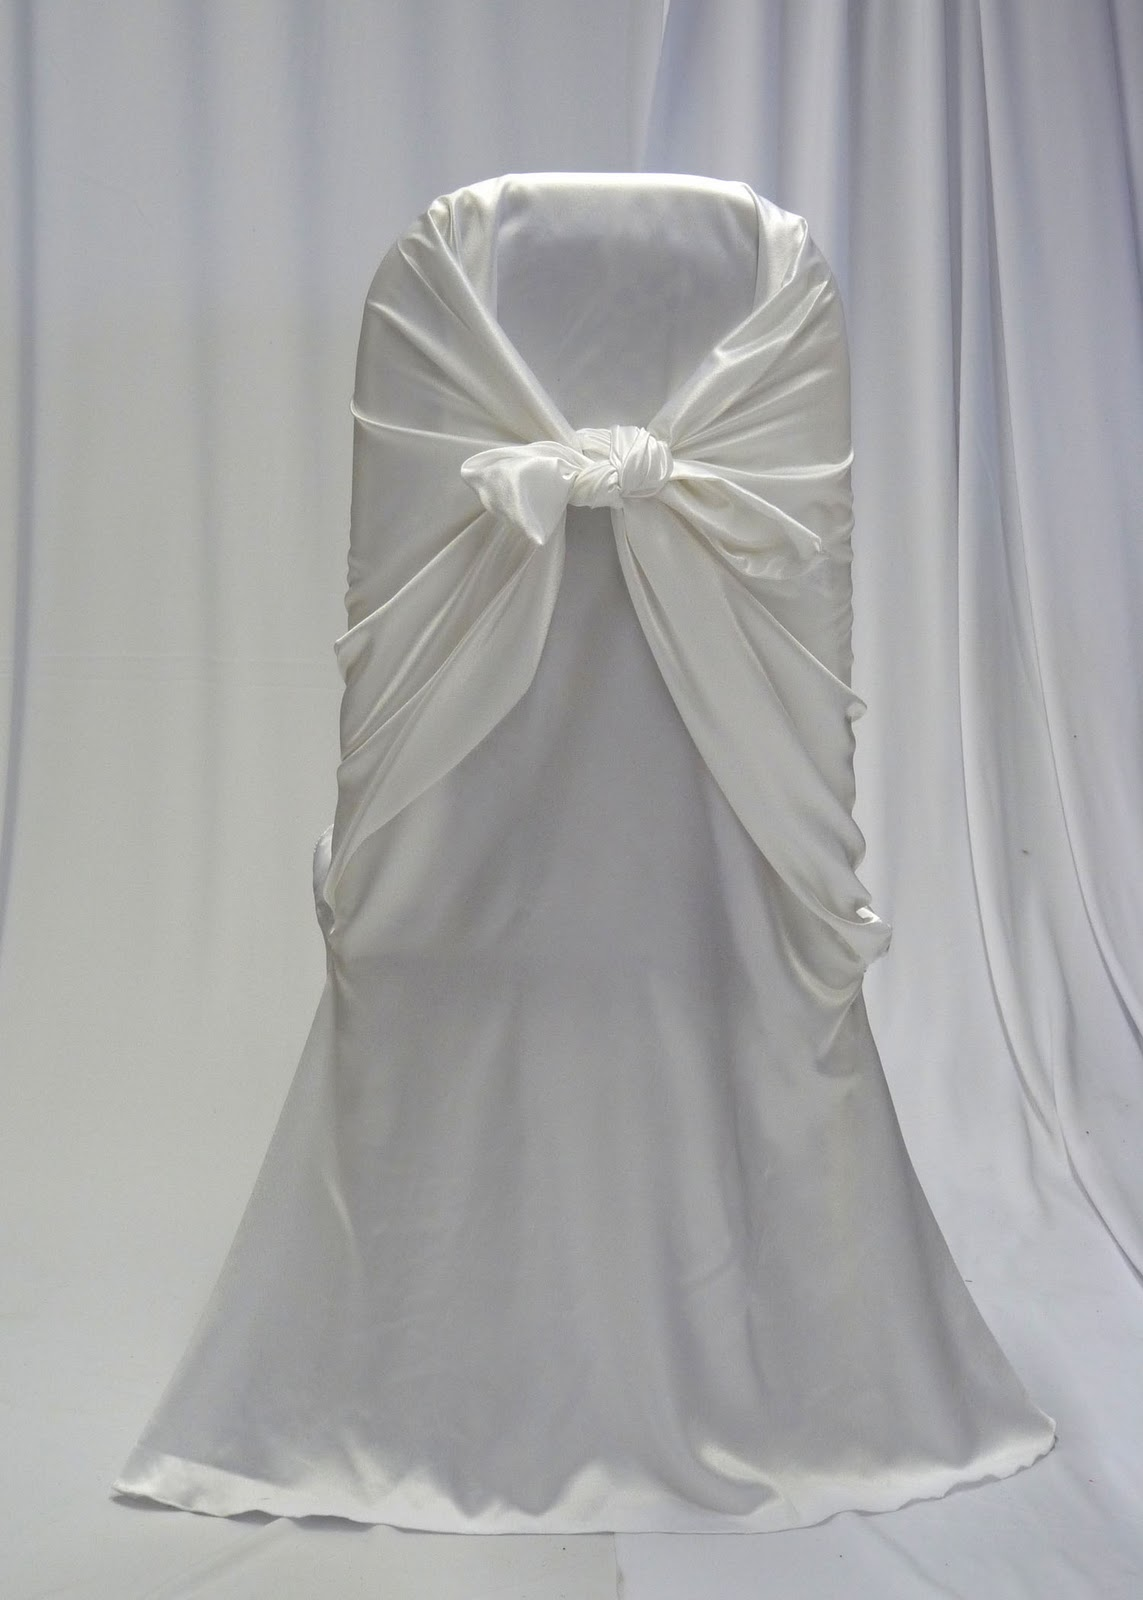 Chair Covers For Rent Toronto Chairs With Lifts The Elderly Decor Cover